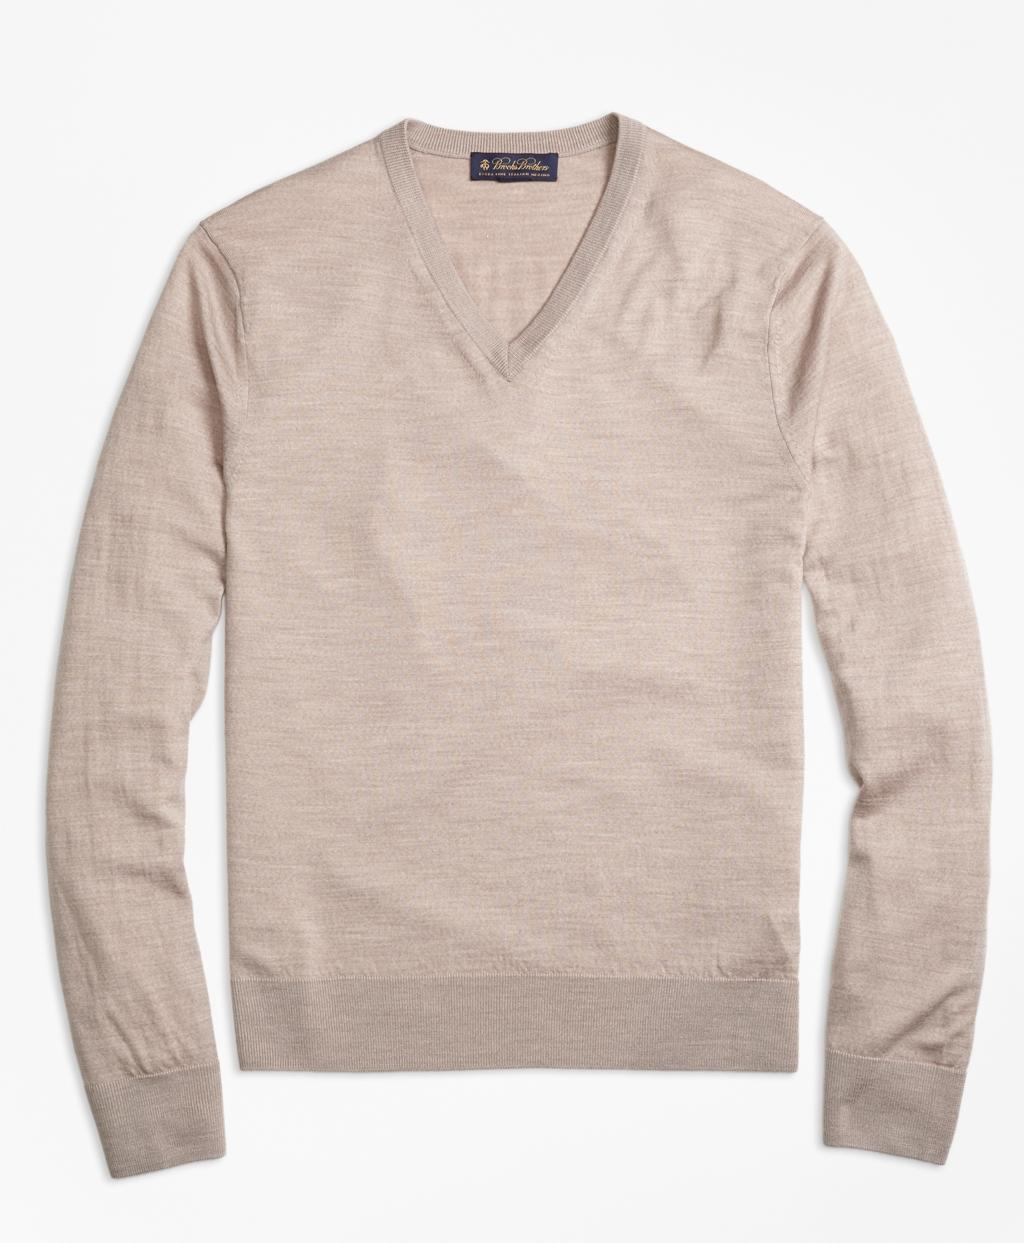 Brooks brothers lightweight merino wool v neck sweater for for Merino wool shirts for travel